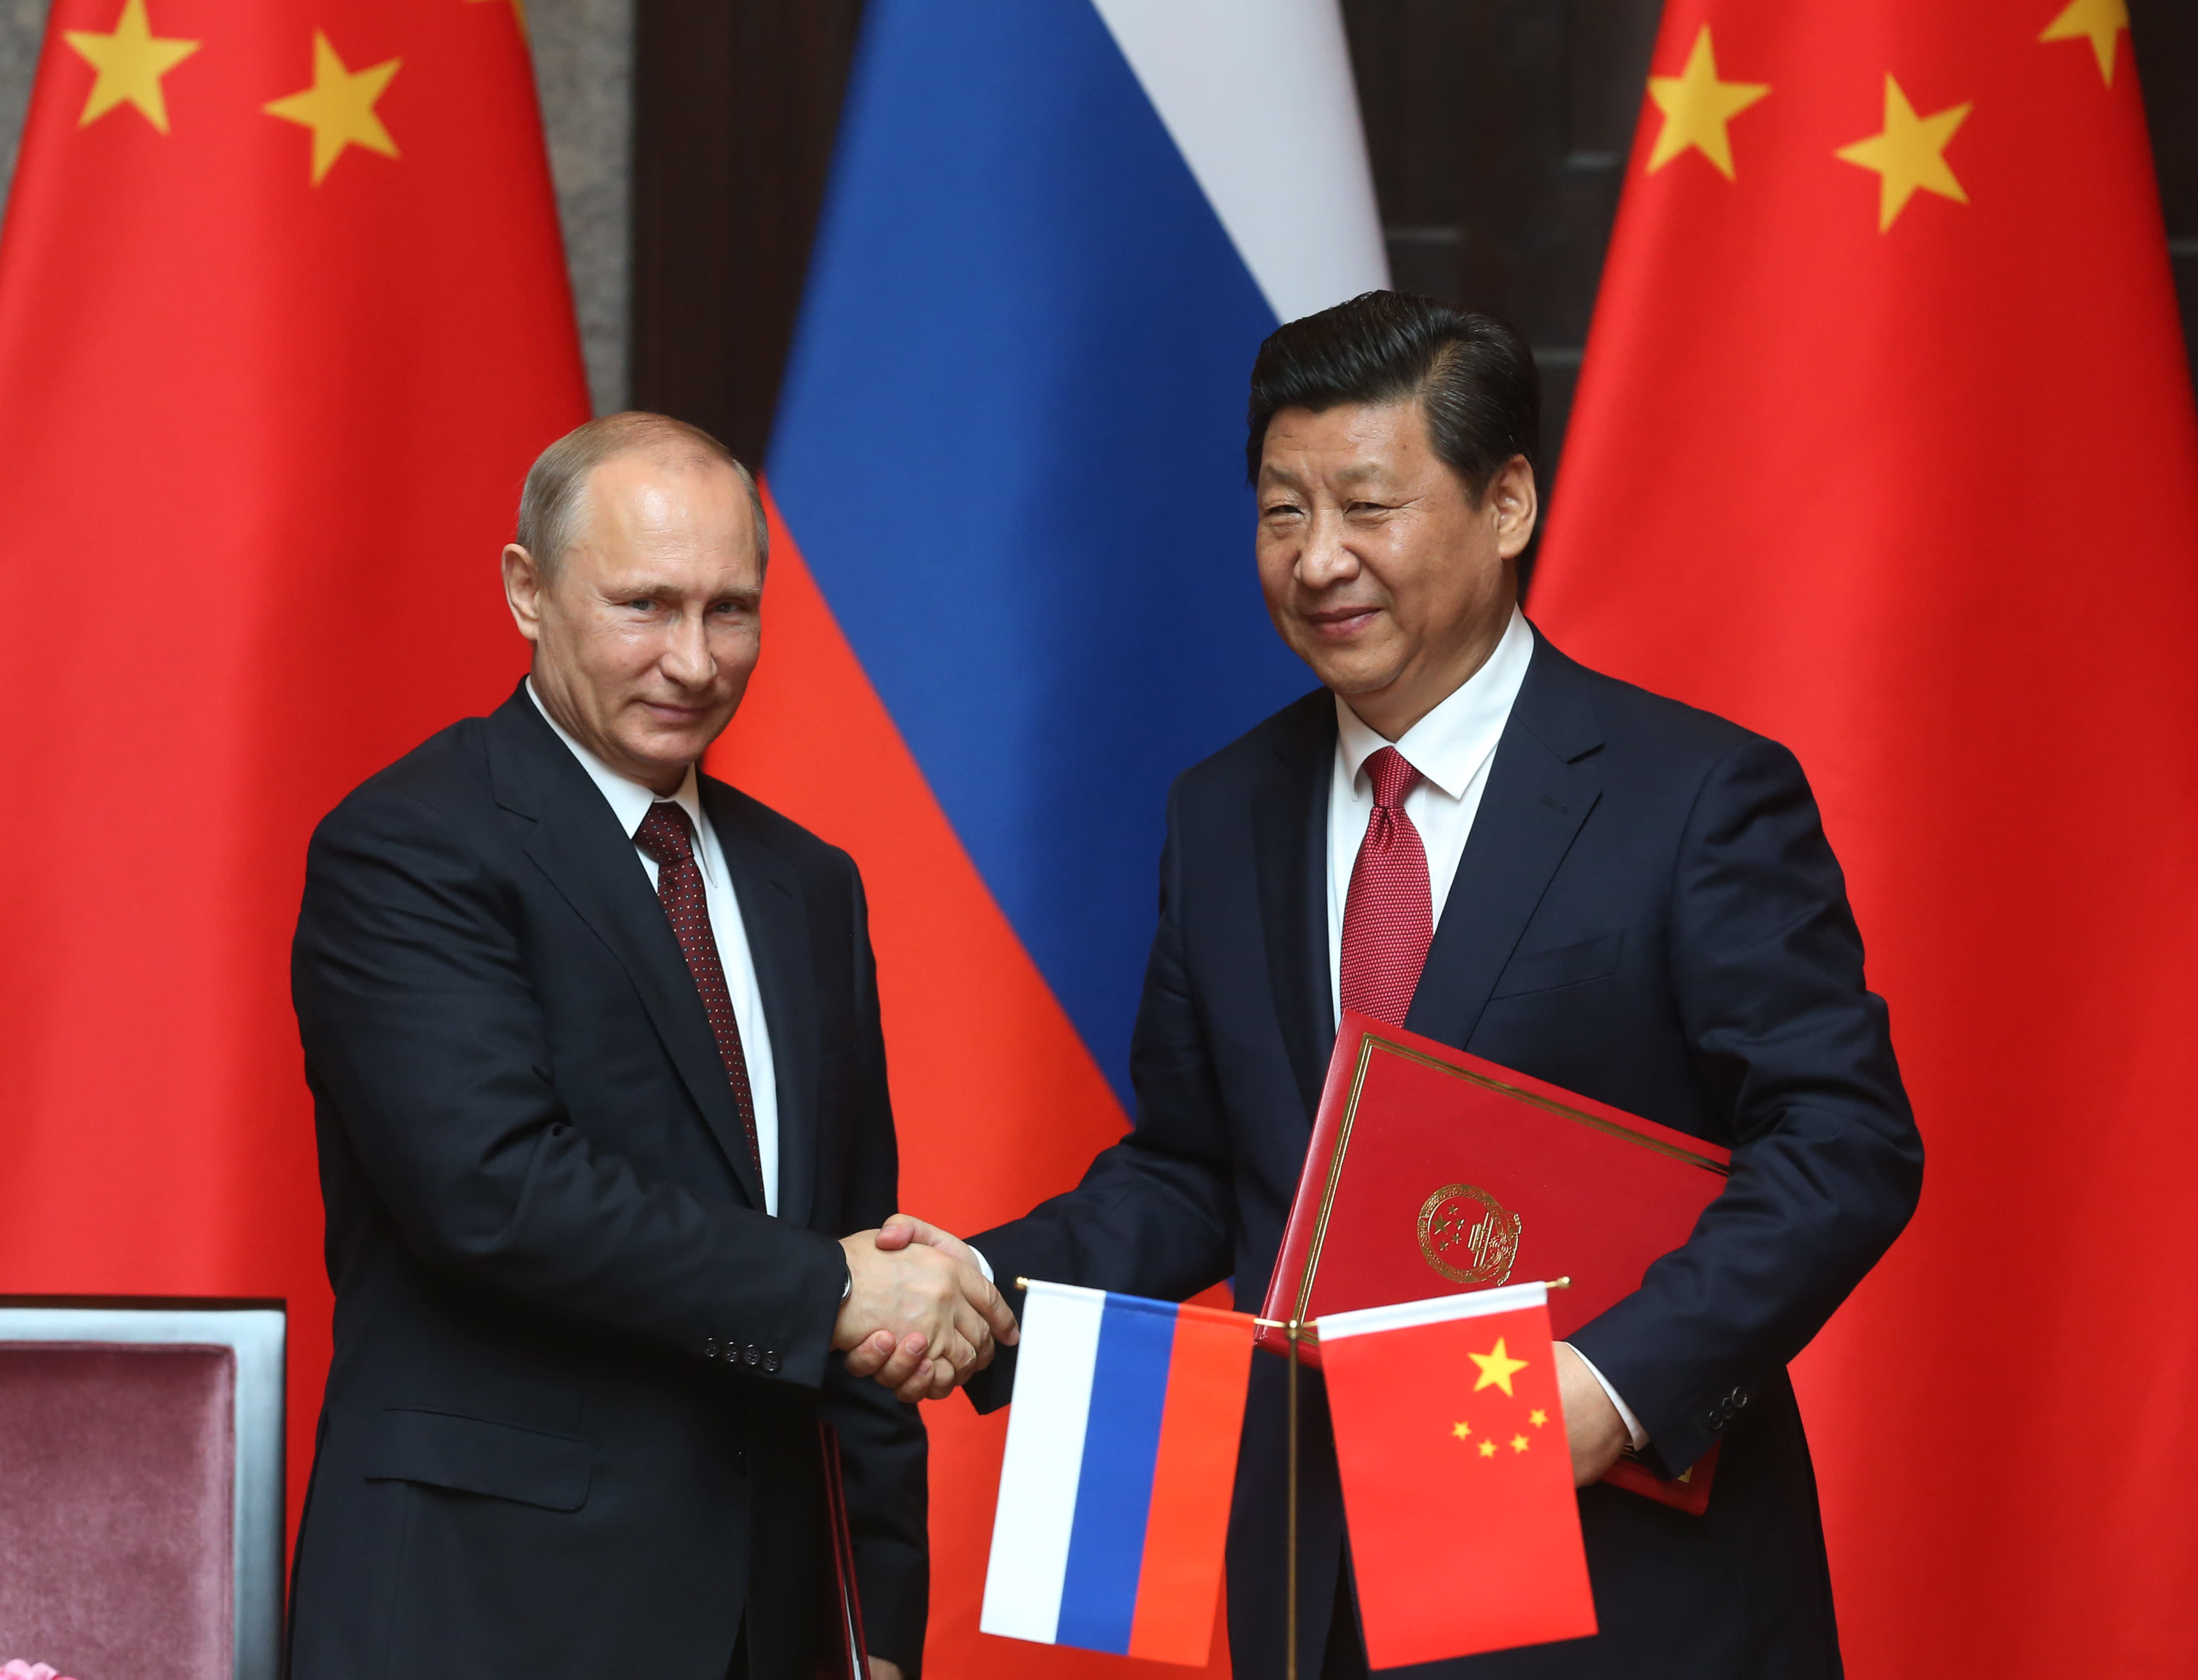 Putin and Xi hail 'unprecedented' ties as US relations sour